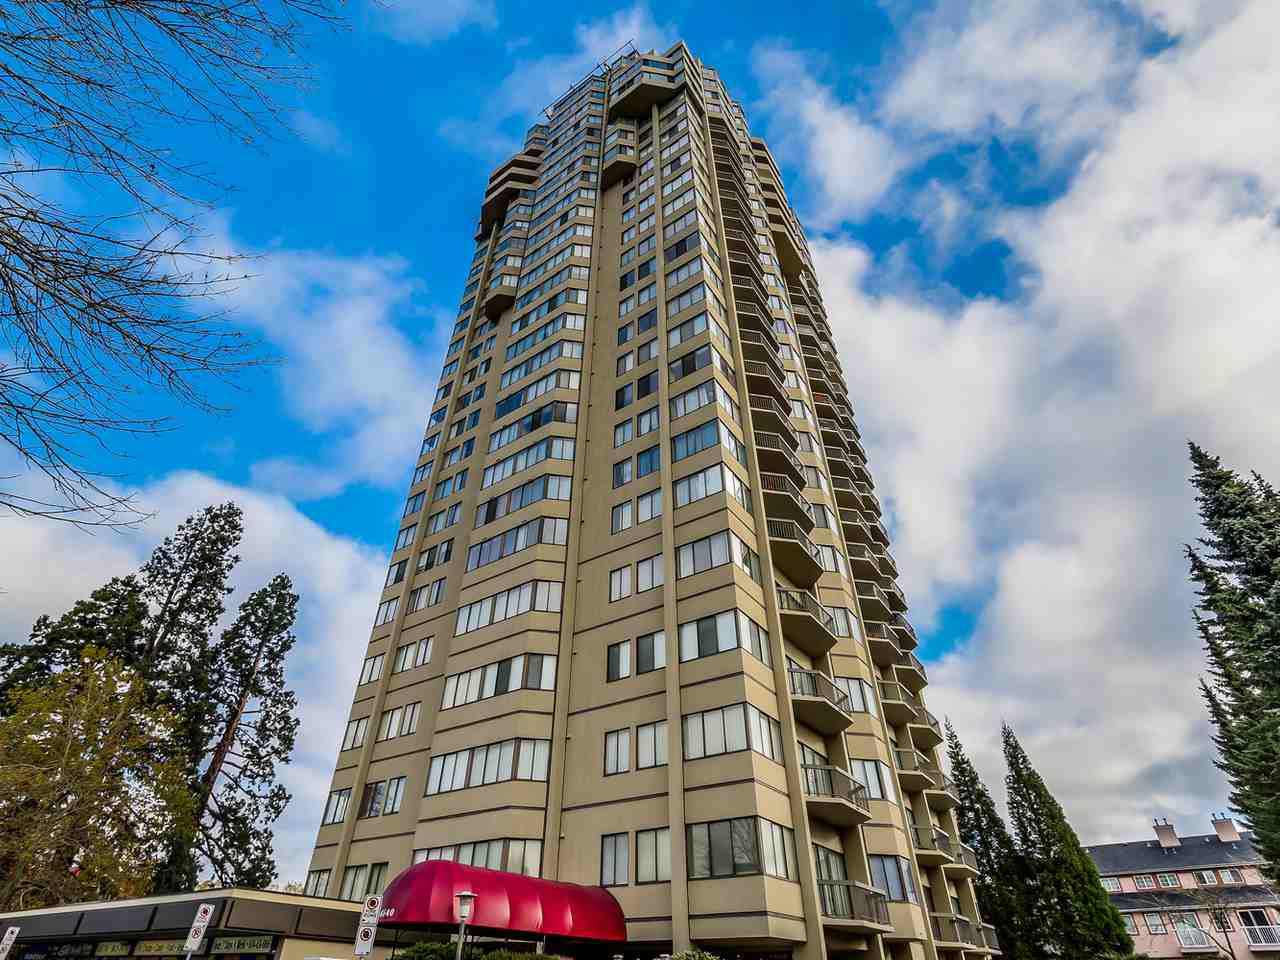 Main Photo: 1802 6540 BURLINGTON AVENUE in Burnaby: Metrotown Condo for sale (Burnaby South)  : MLS®# R2012550